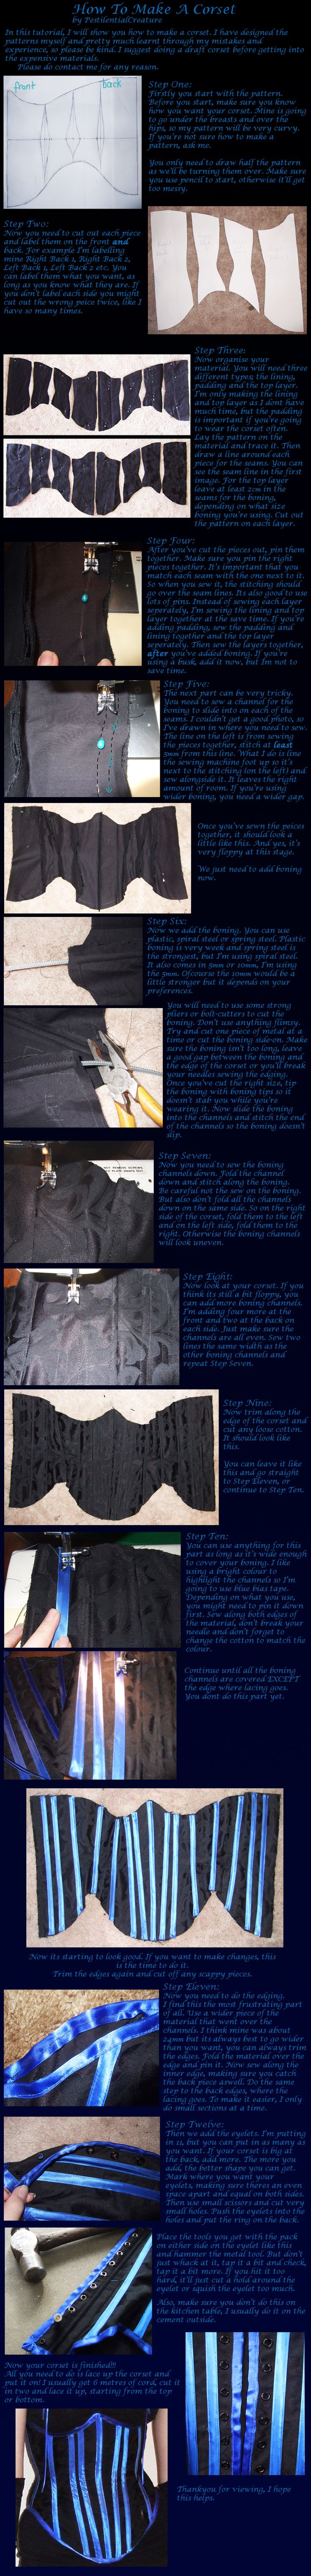 Corset Tutorial. by PestilentialCreature.deviantart.com on @deviantART#how-to #sewing #fashiondesign